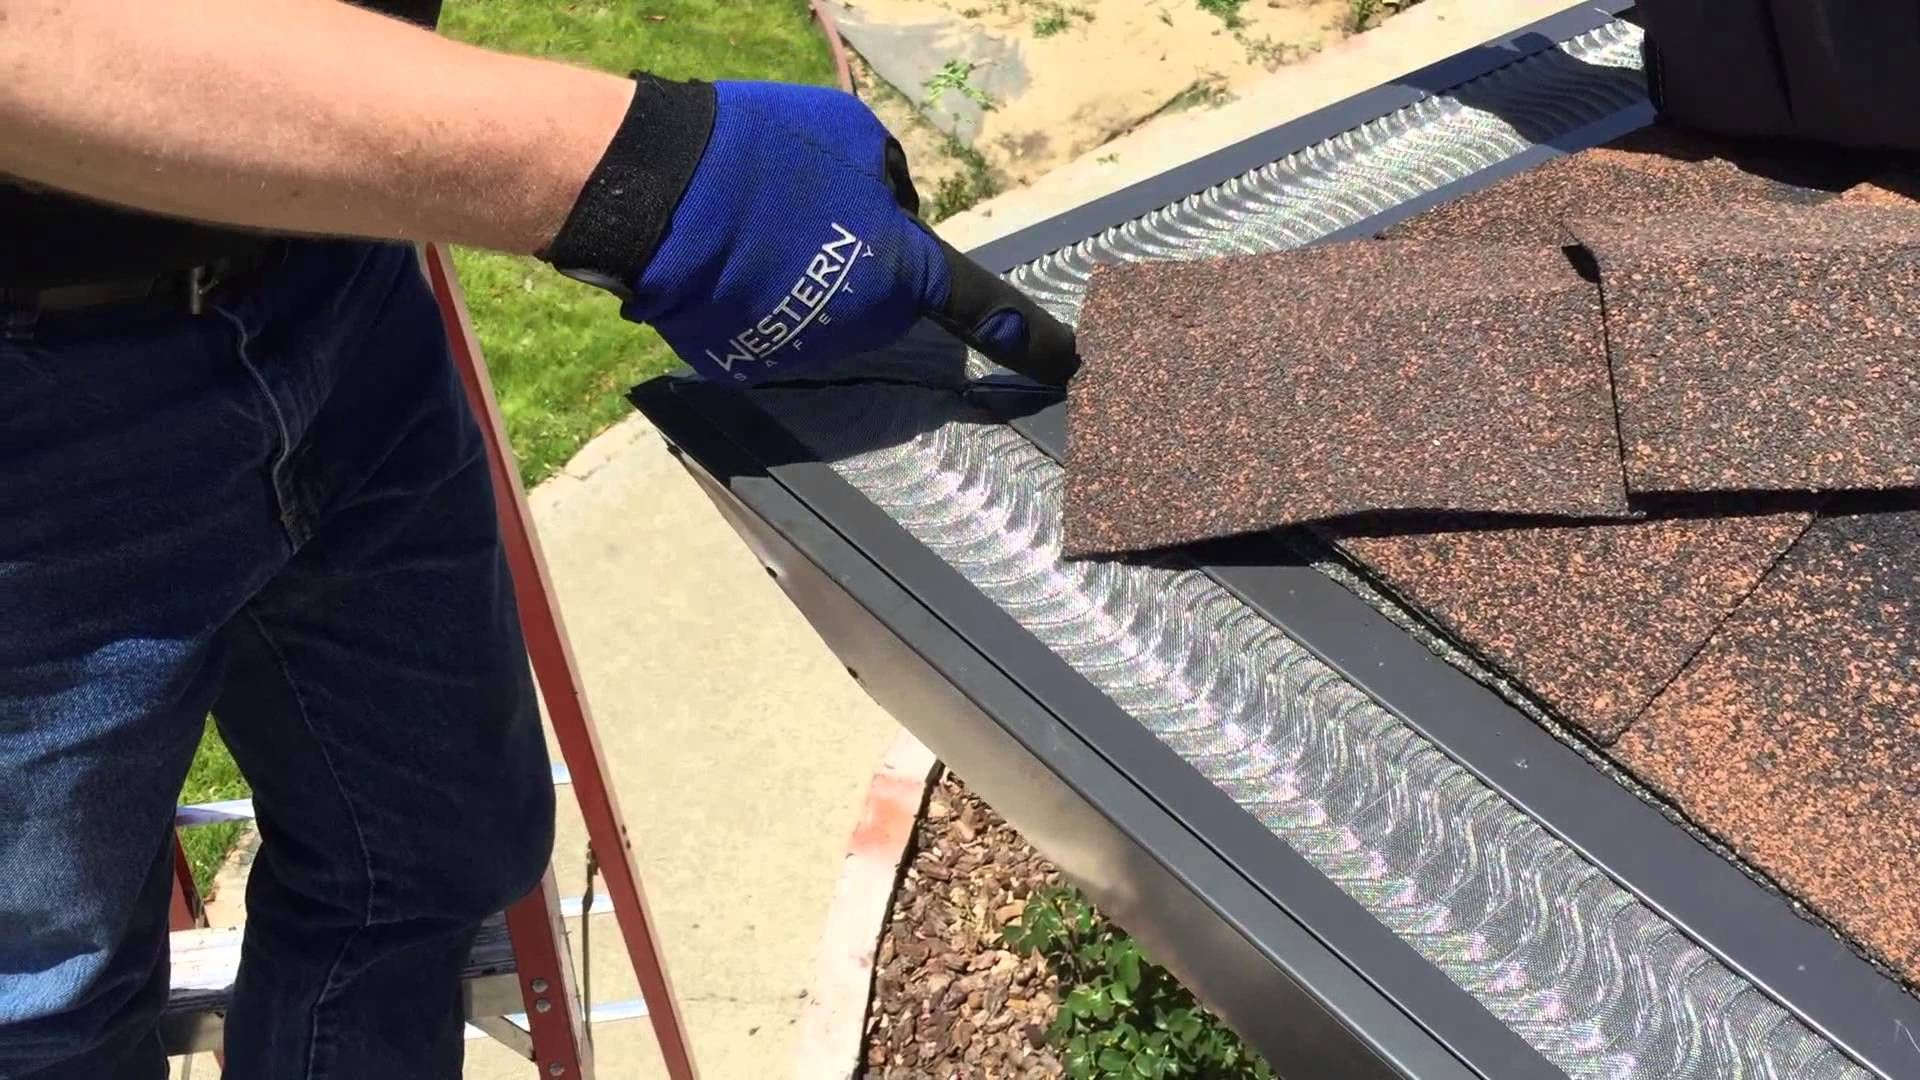 Top 5 Best Gutter Guards 2018 Reviews There S No Doubt That Manually Cleaning Out The Gutters On Your Roof Is No Fun Wh Gutter Guard Gutter Drainage Gutters